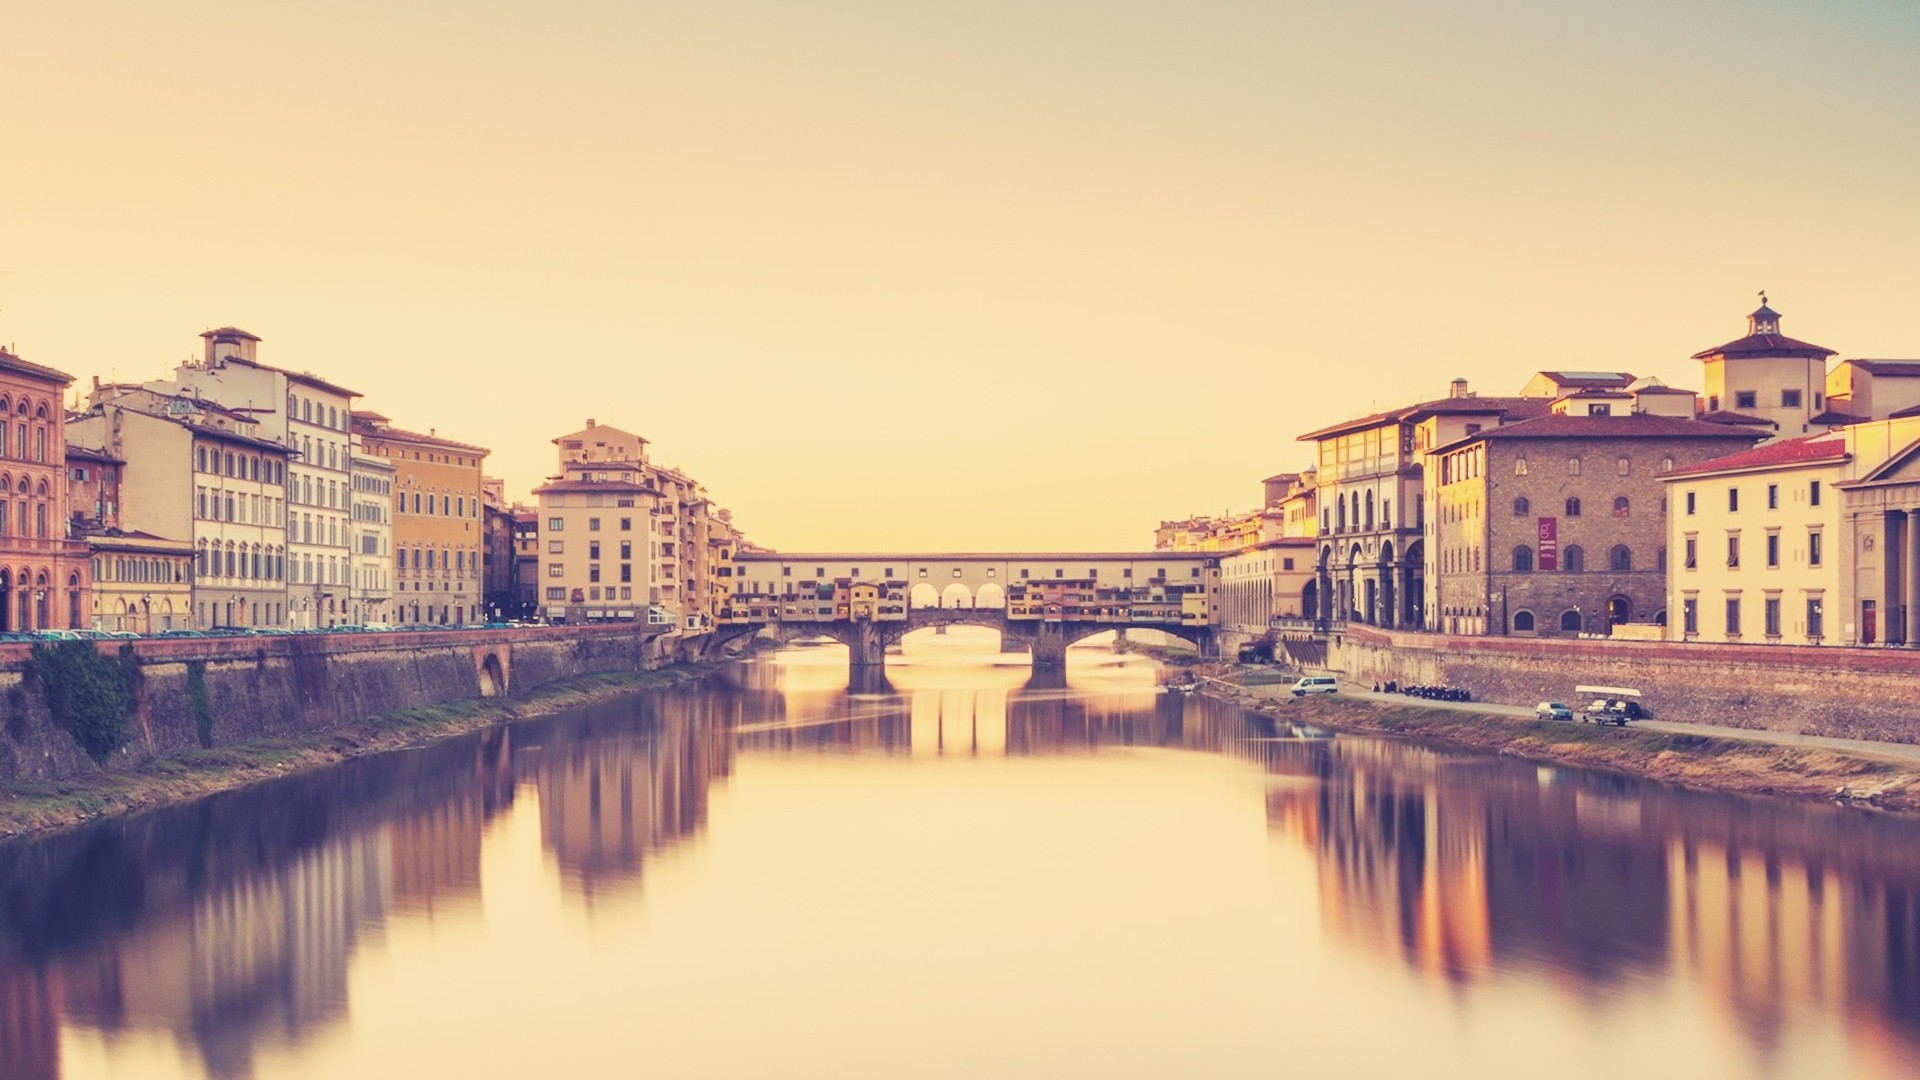 1920x1080 florence italy river bridge building day Full HD 1080p HD